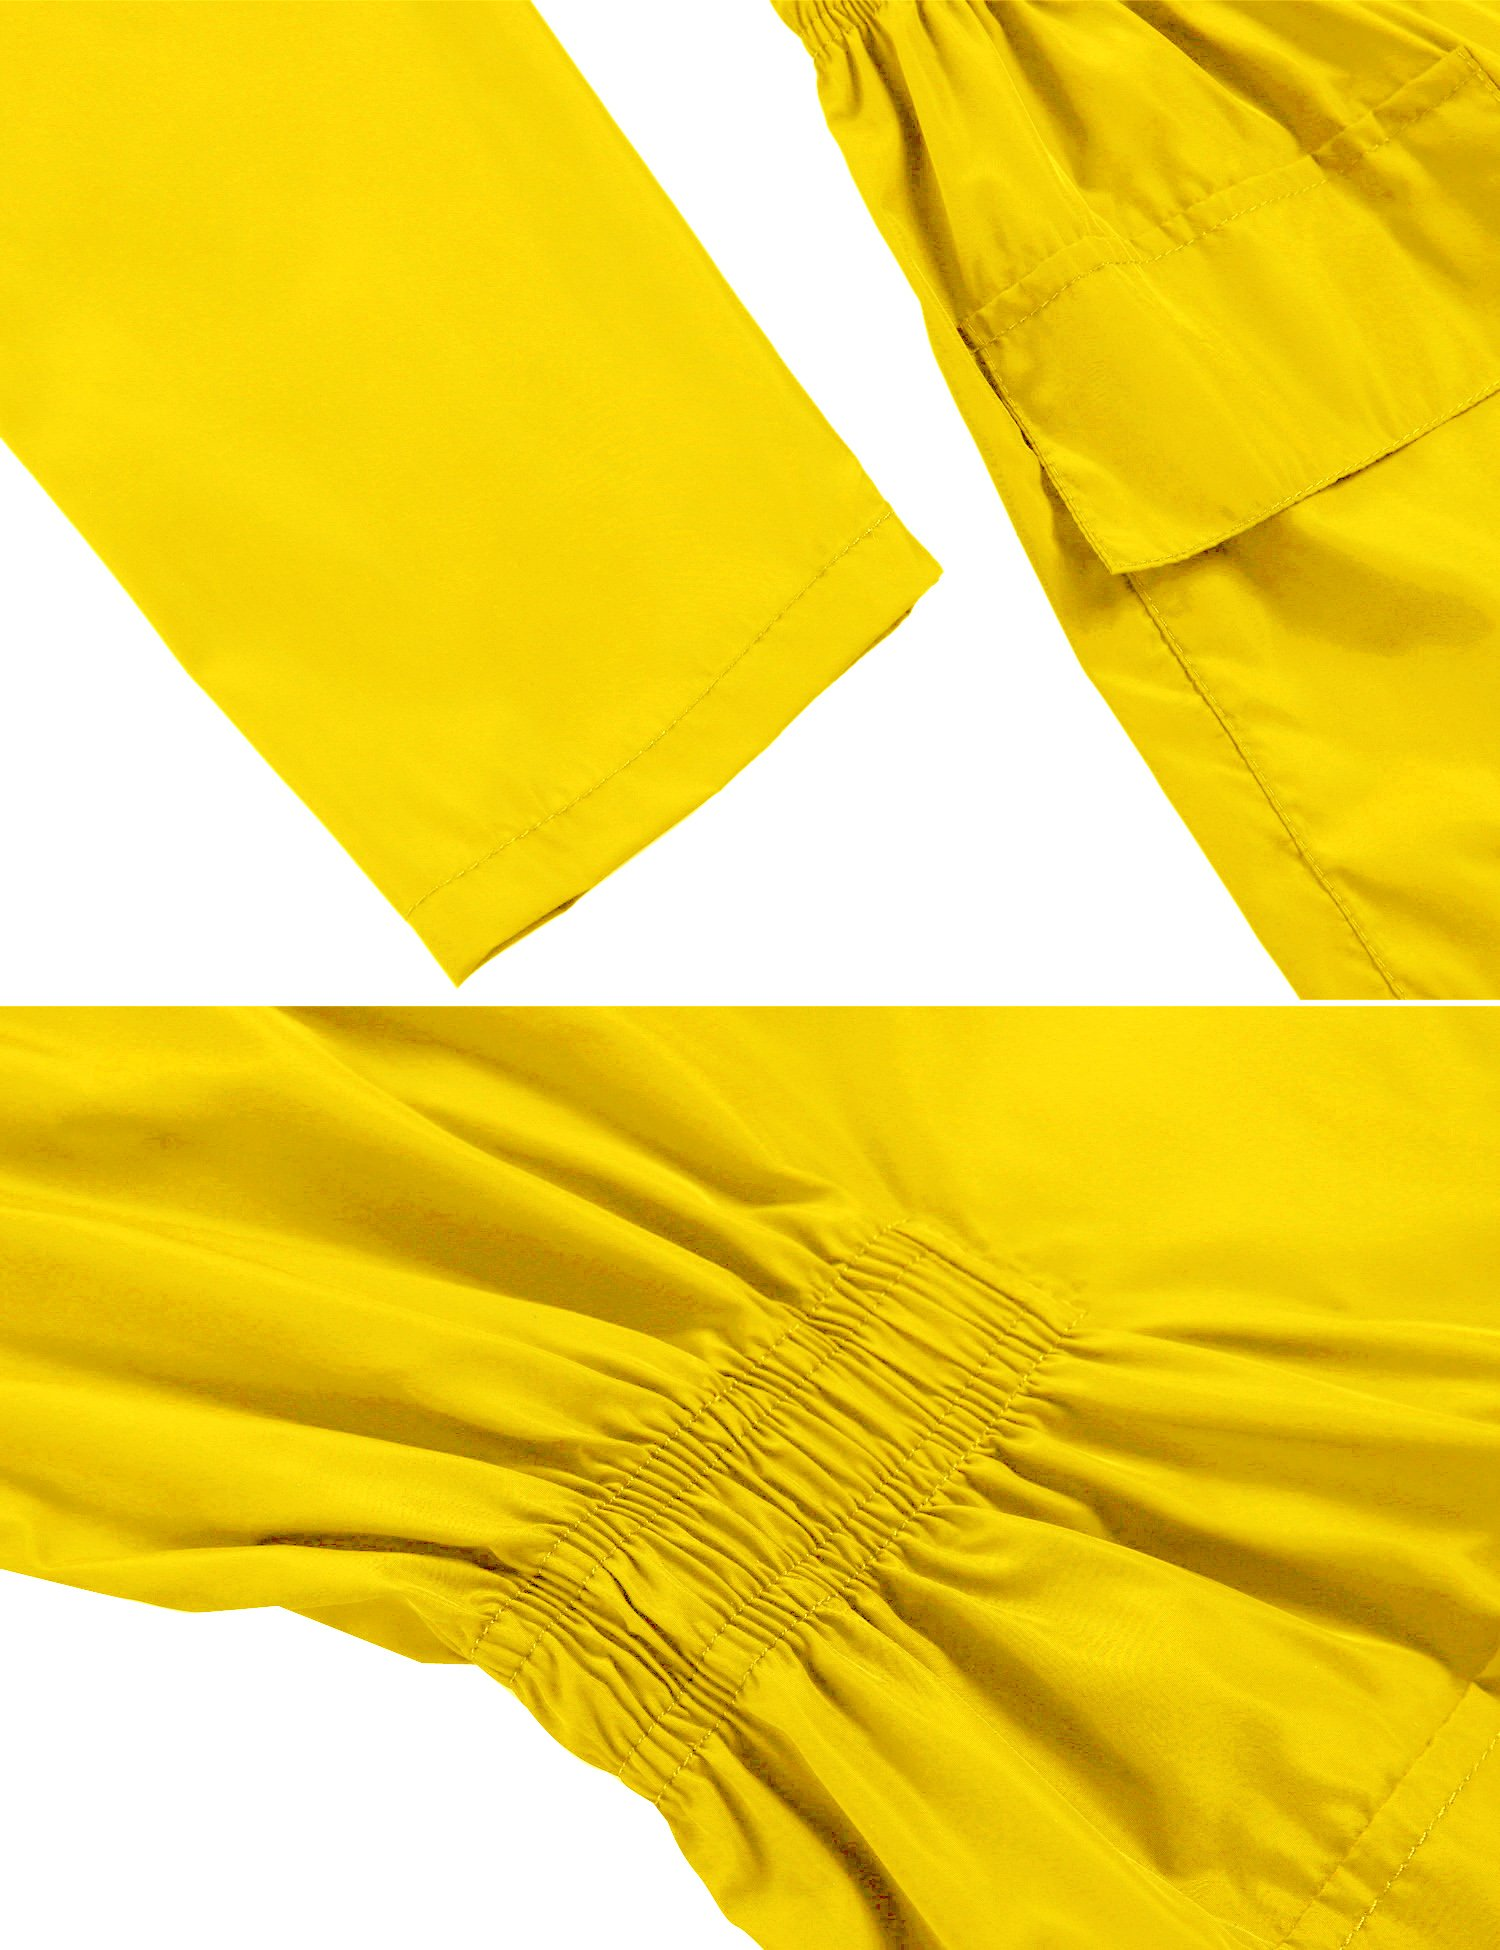 Hotouch Womens' Waterproof Lightweight Raincoat Hooded Outdoor Hiking Long Rain Jacket Yellow S by Hotouch (Image #4)